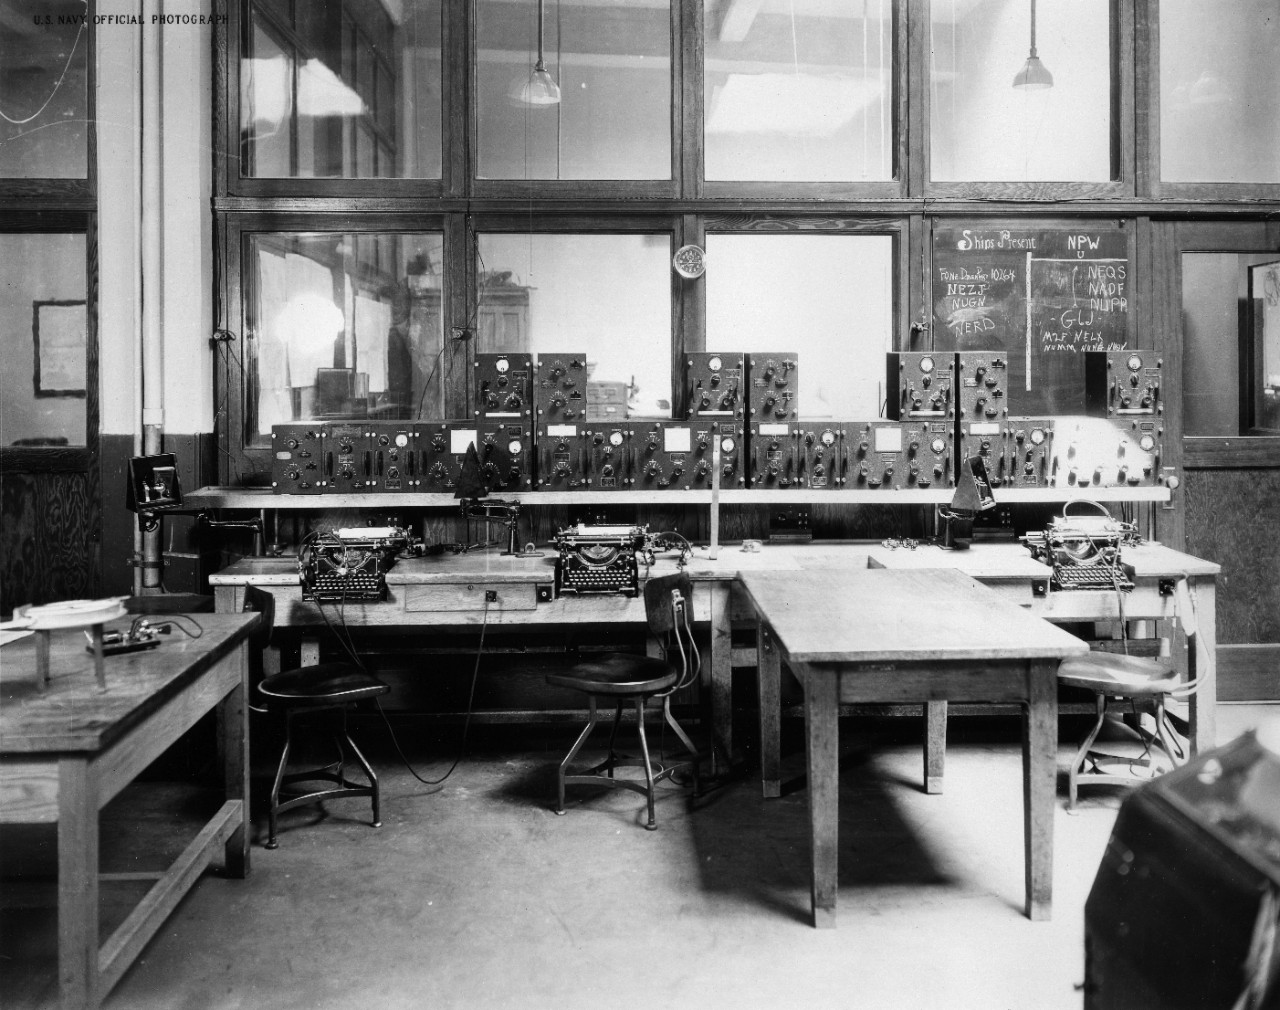 Approximately 50 photos, negatives, and cyanotypes (plus duplicates) showing the Radio Headquarters of the Twelfth Naval District, 100 Harrison Street, San Francisco, California, circa 1926-1927. Shown are: control stations, transmitters, generators, amplifiers, receivers, antenna system, distribution panel, high speed recorder, work shop, batteries, Bellevue experimental receiver, compass tracking section. Some prints and negatives were made from acetate negatives which were subsequently destroyed.